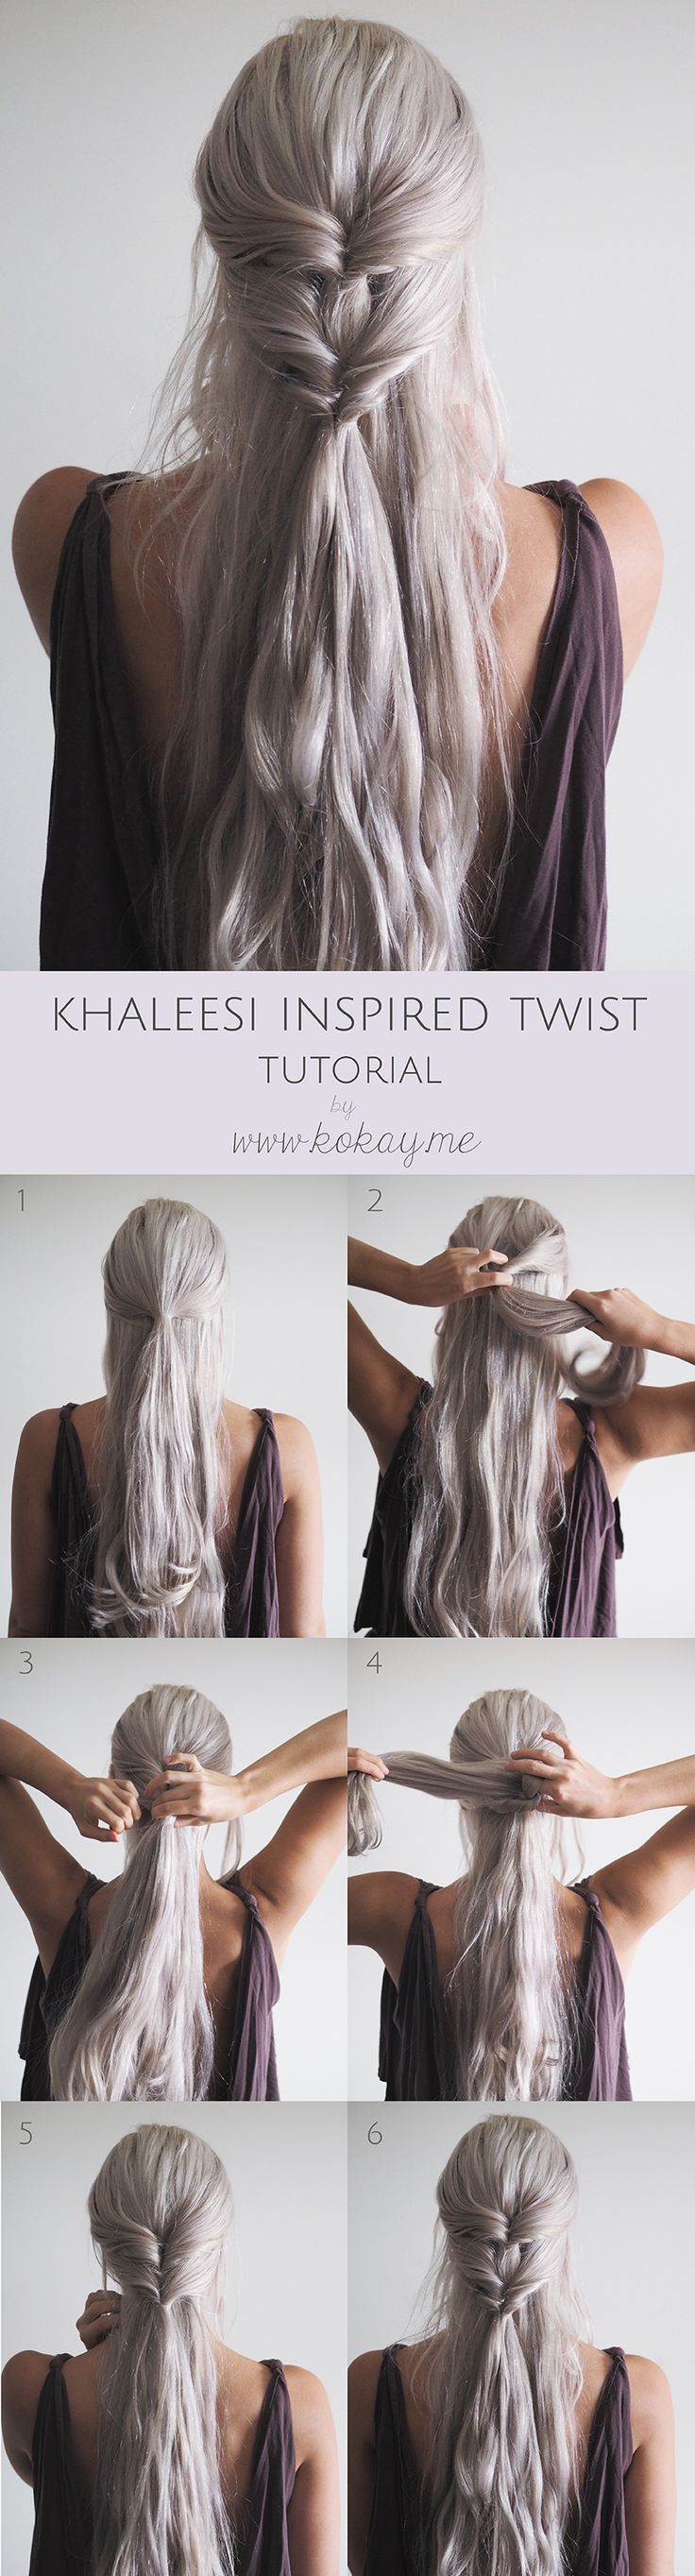 Khaleesi inspired twist tutorial.